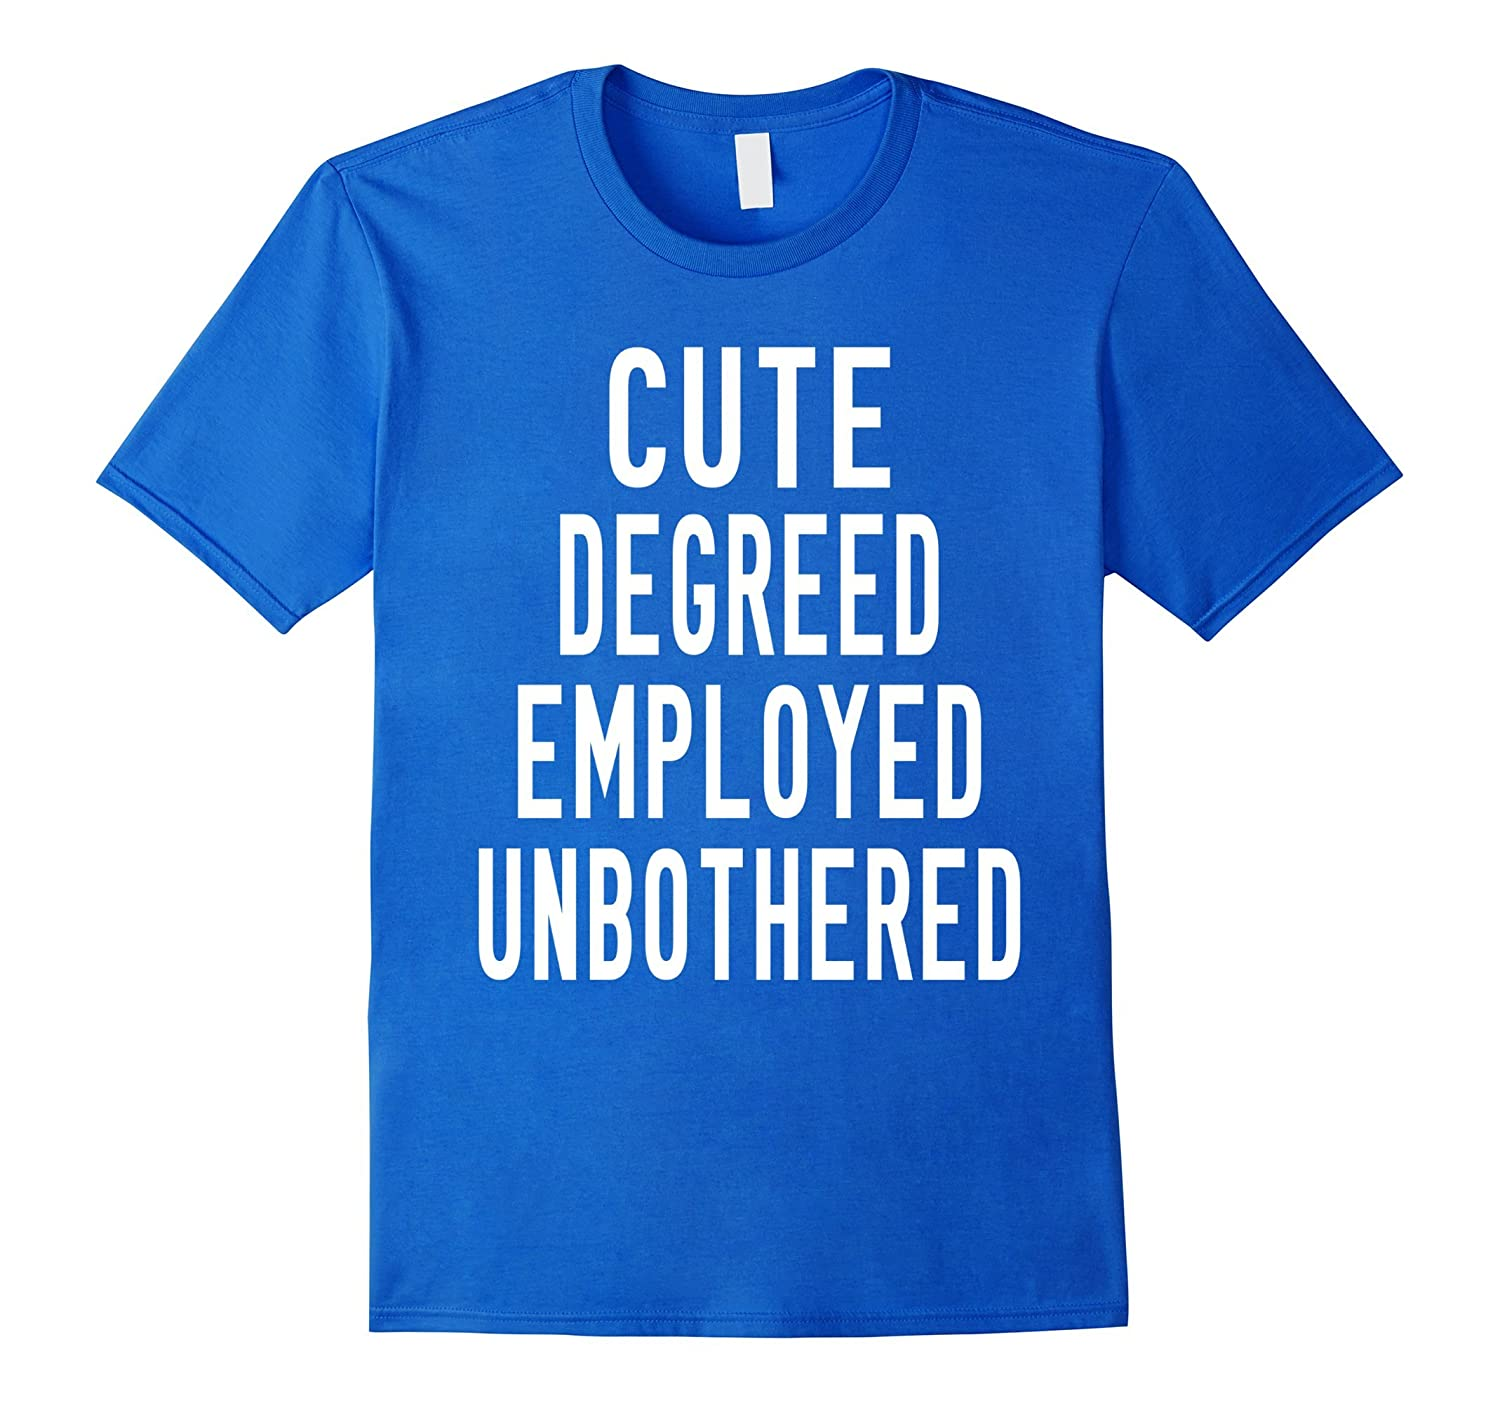 Cute Degreed Employed Unbothered T-Shirt – Relaxed Fit